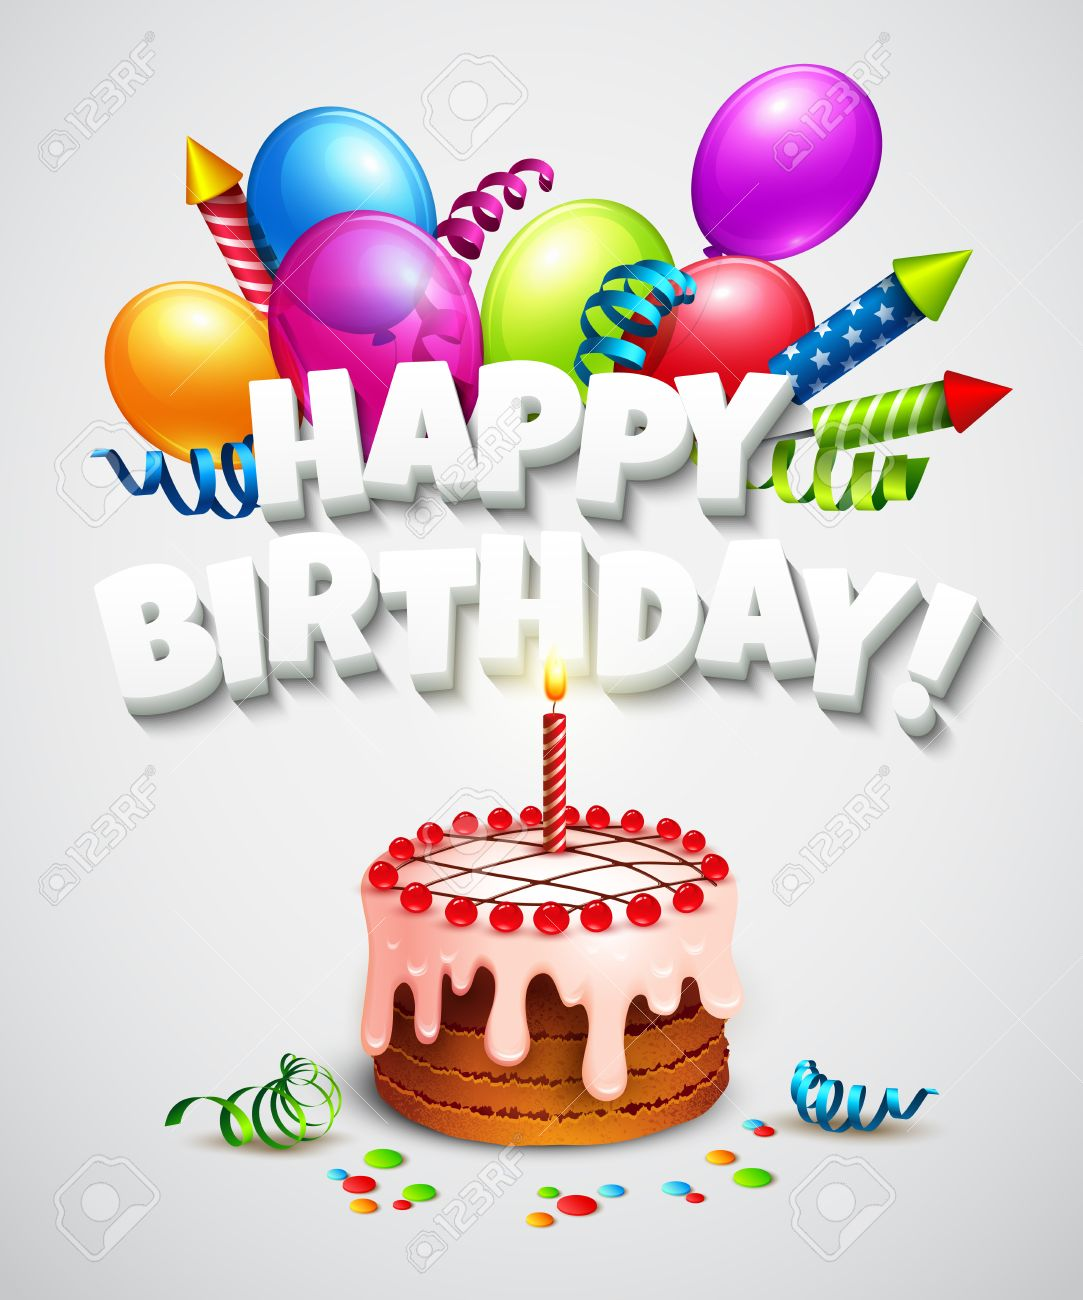 Happy Birthday Greeting Card With Cake And Balloons Vector Illustration Stock